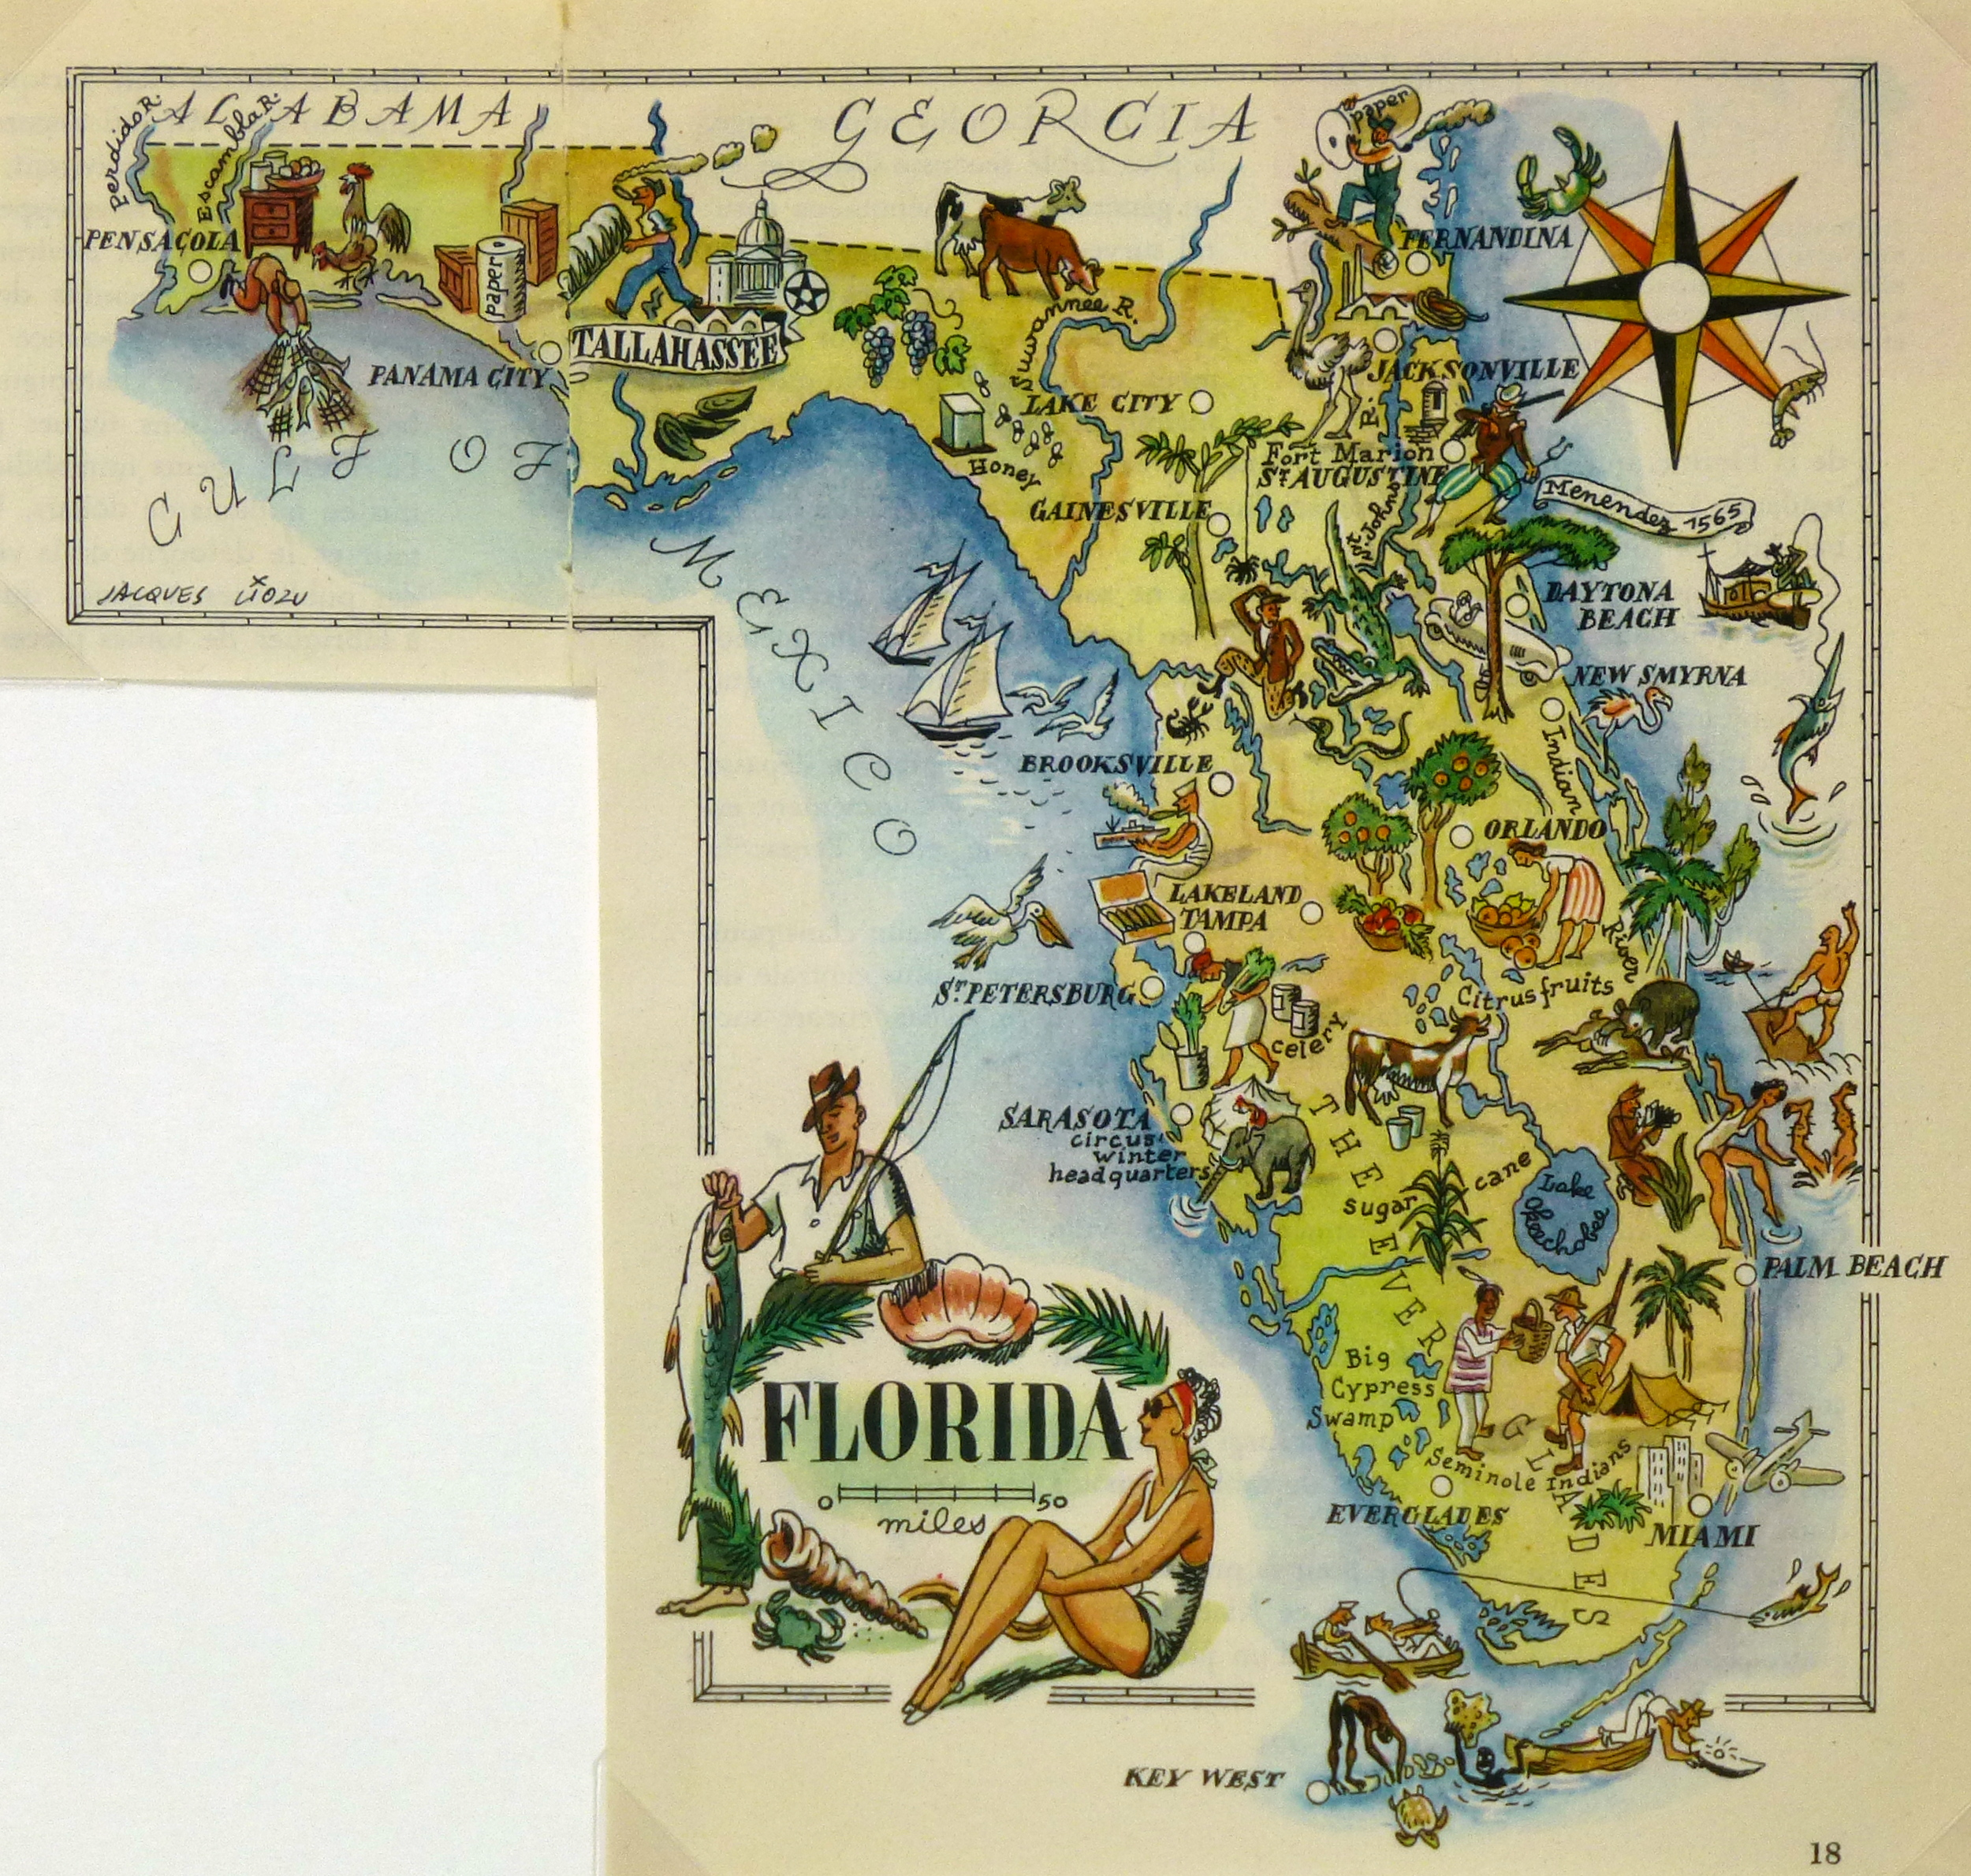 Florida Pictorial Map, 1946